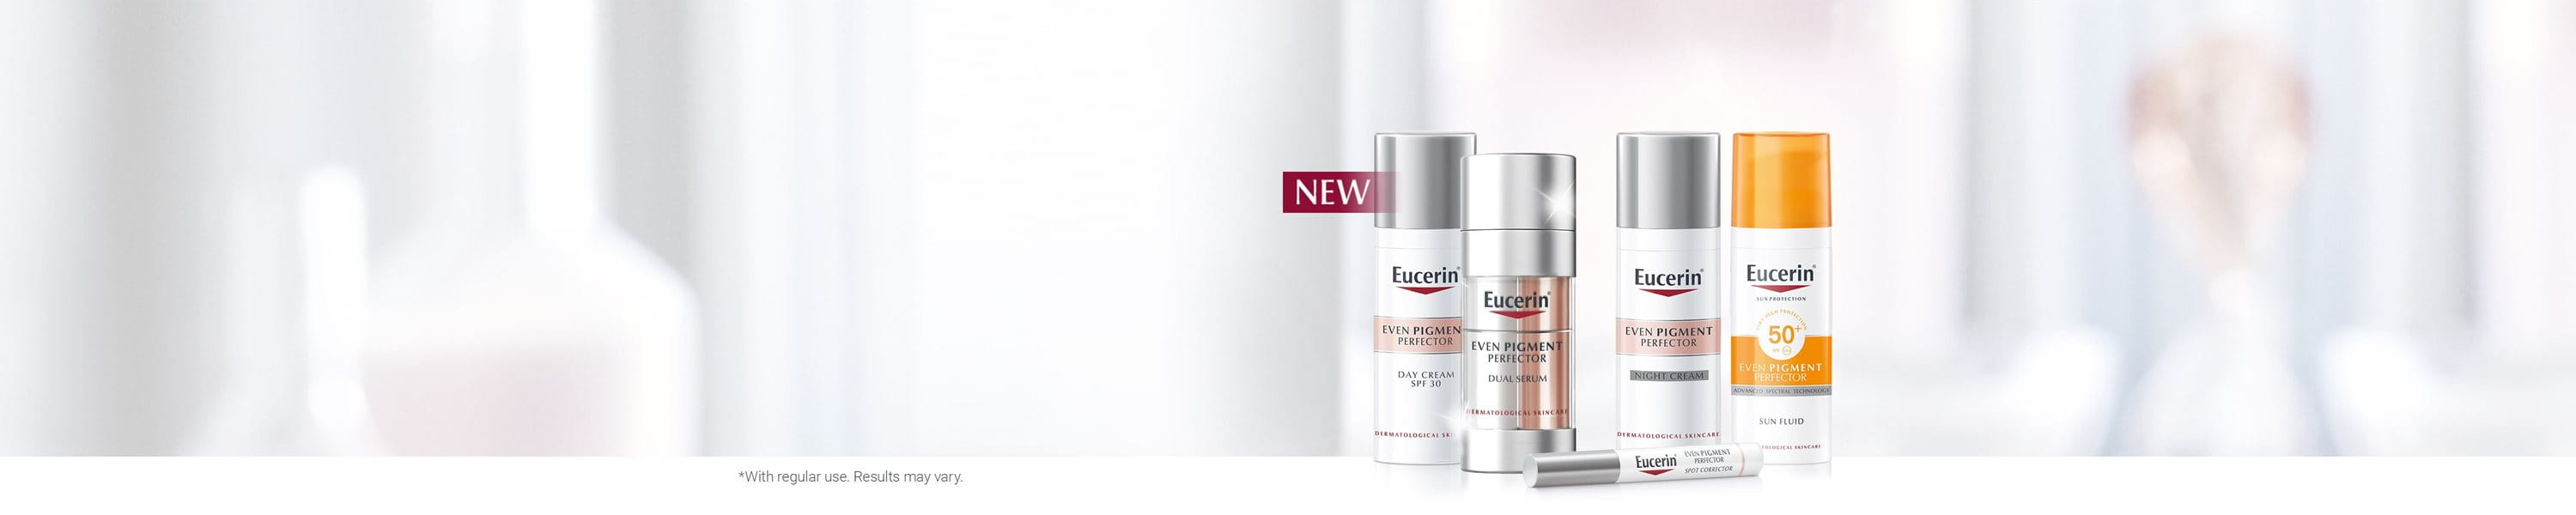 Hyperpigmentation products from Eucerin